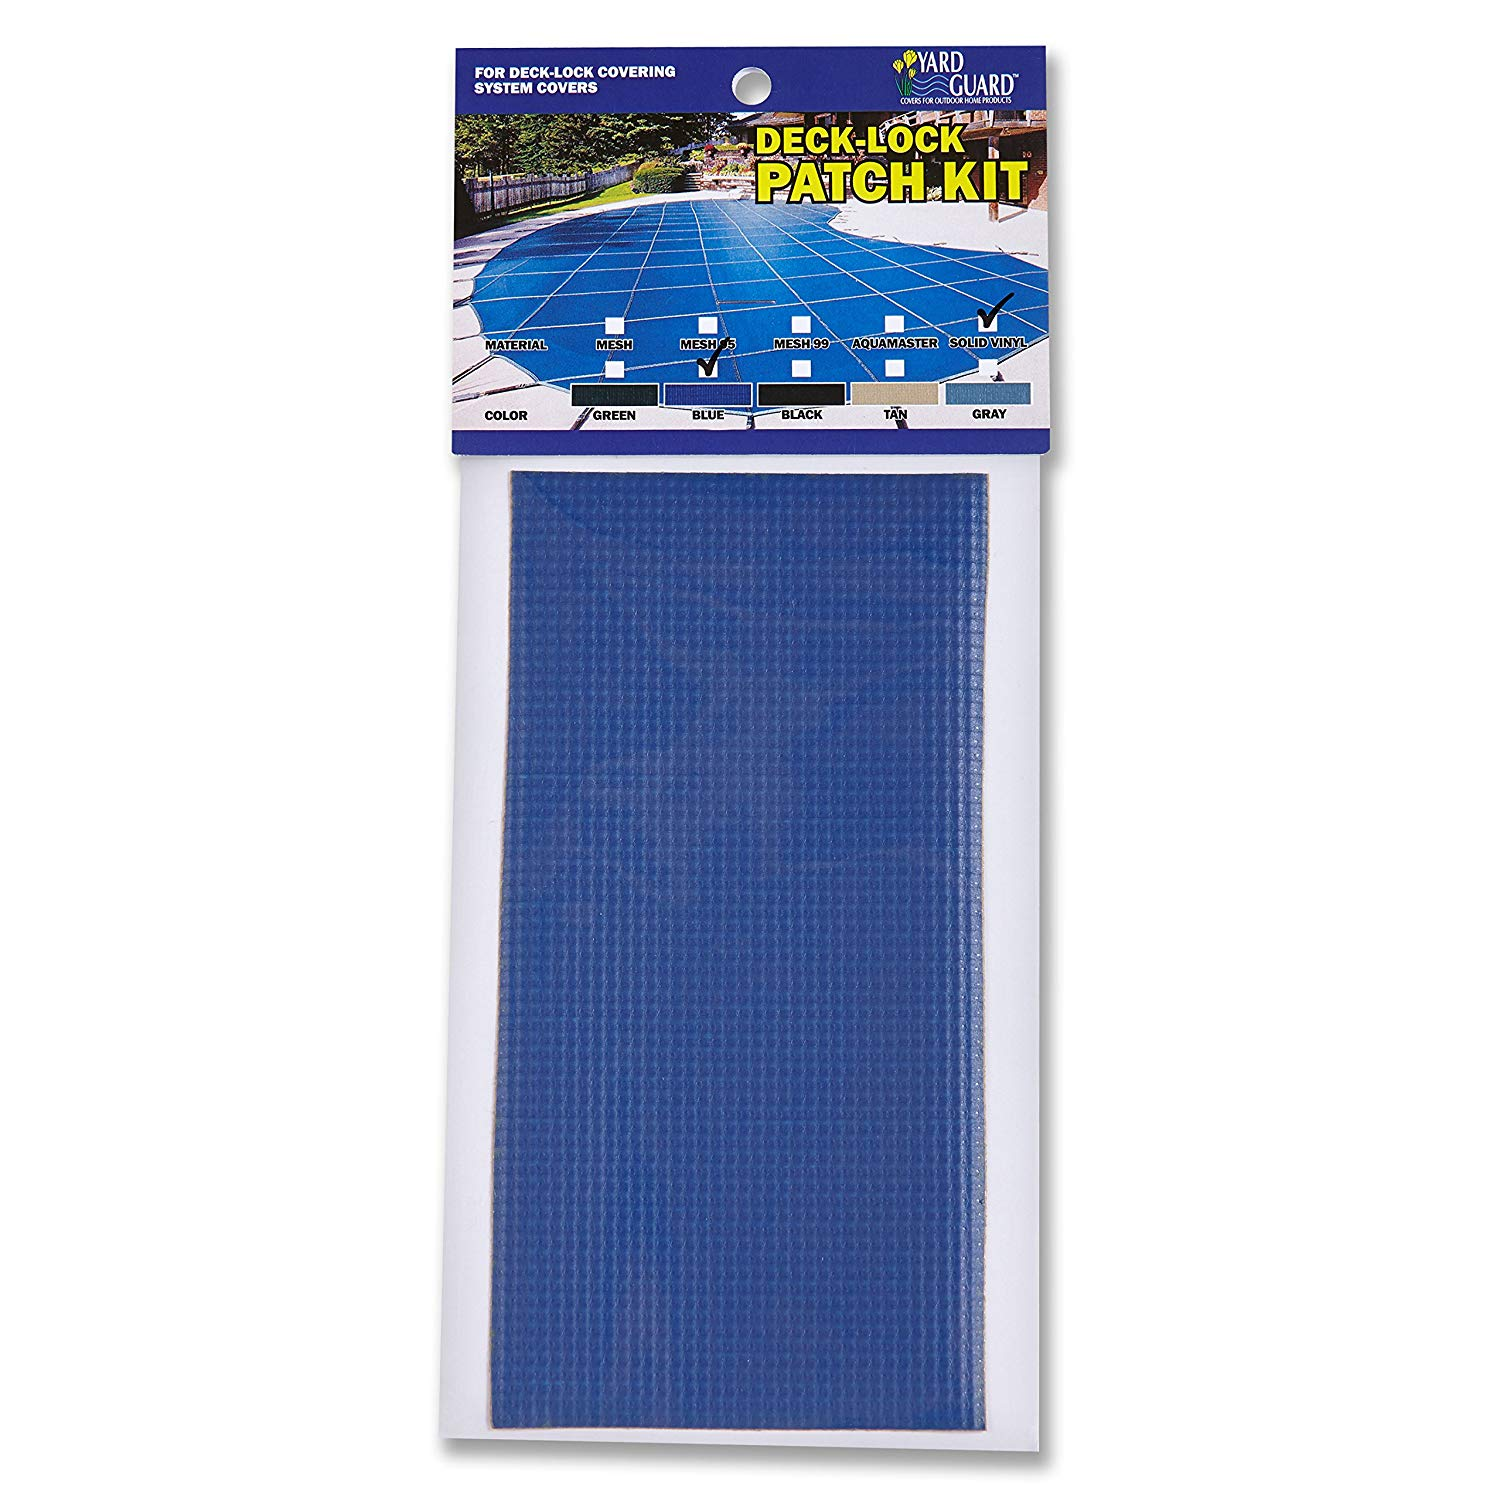 swimming pool safety cover patch kit